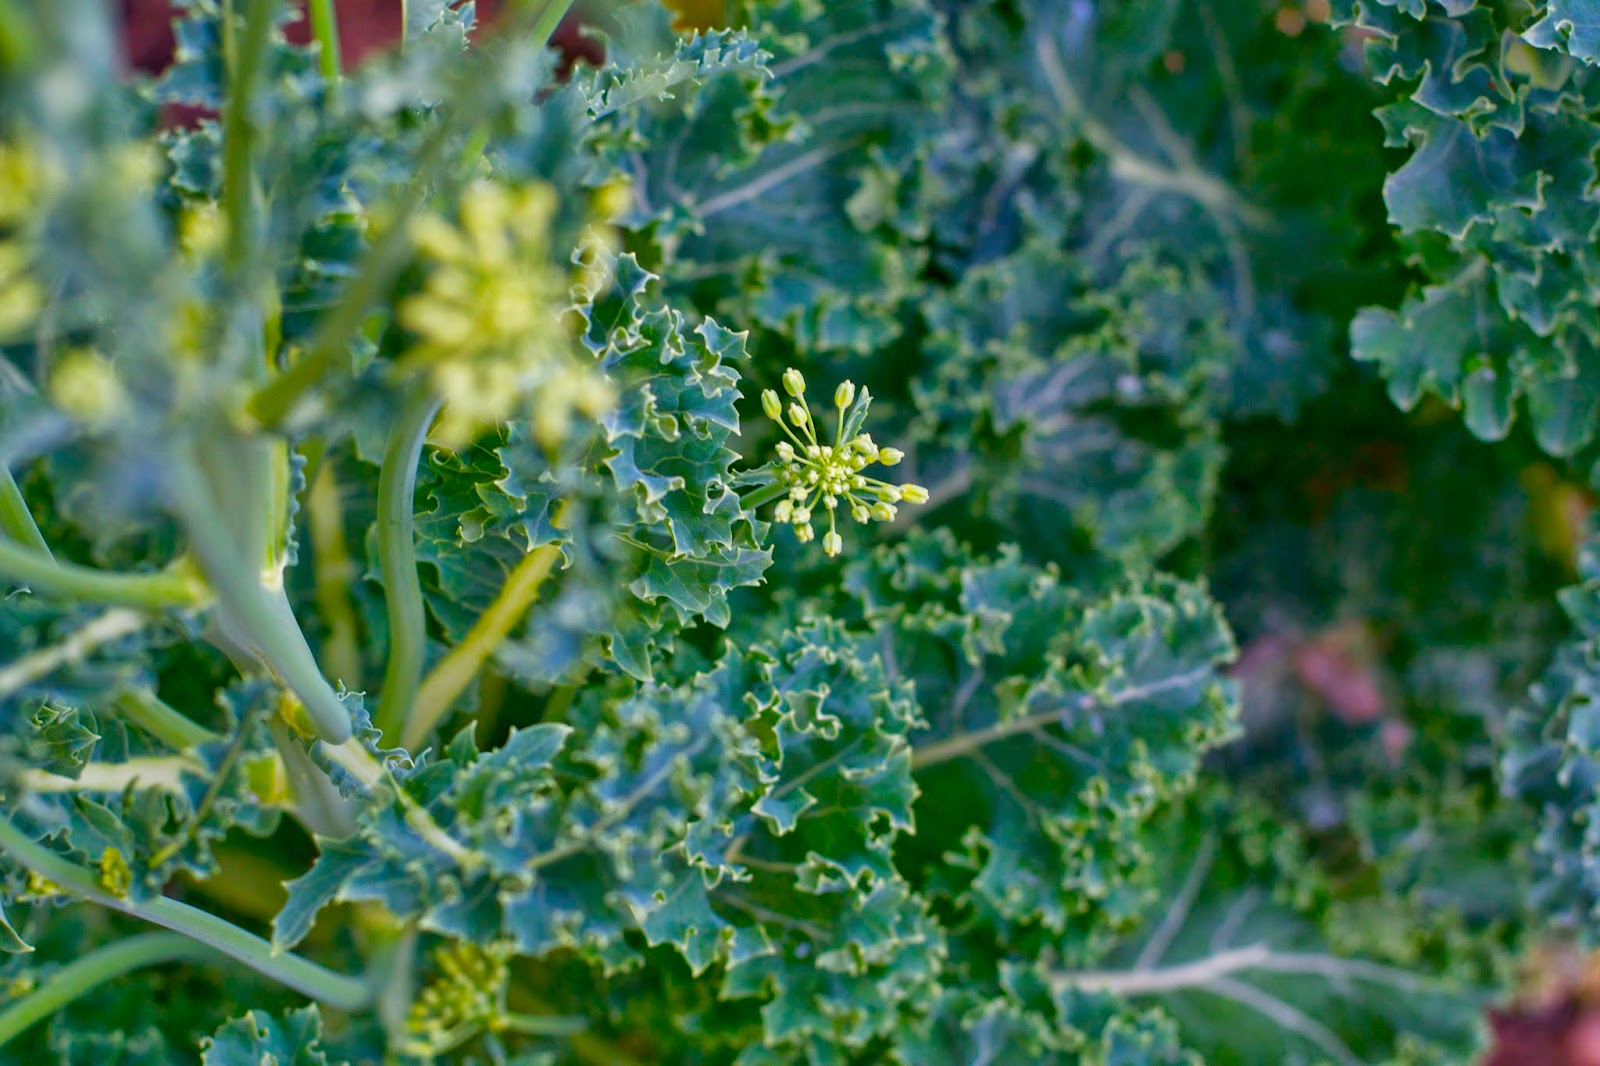 This kale has turned into a giant bush, almost as tall as me!